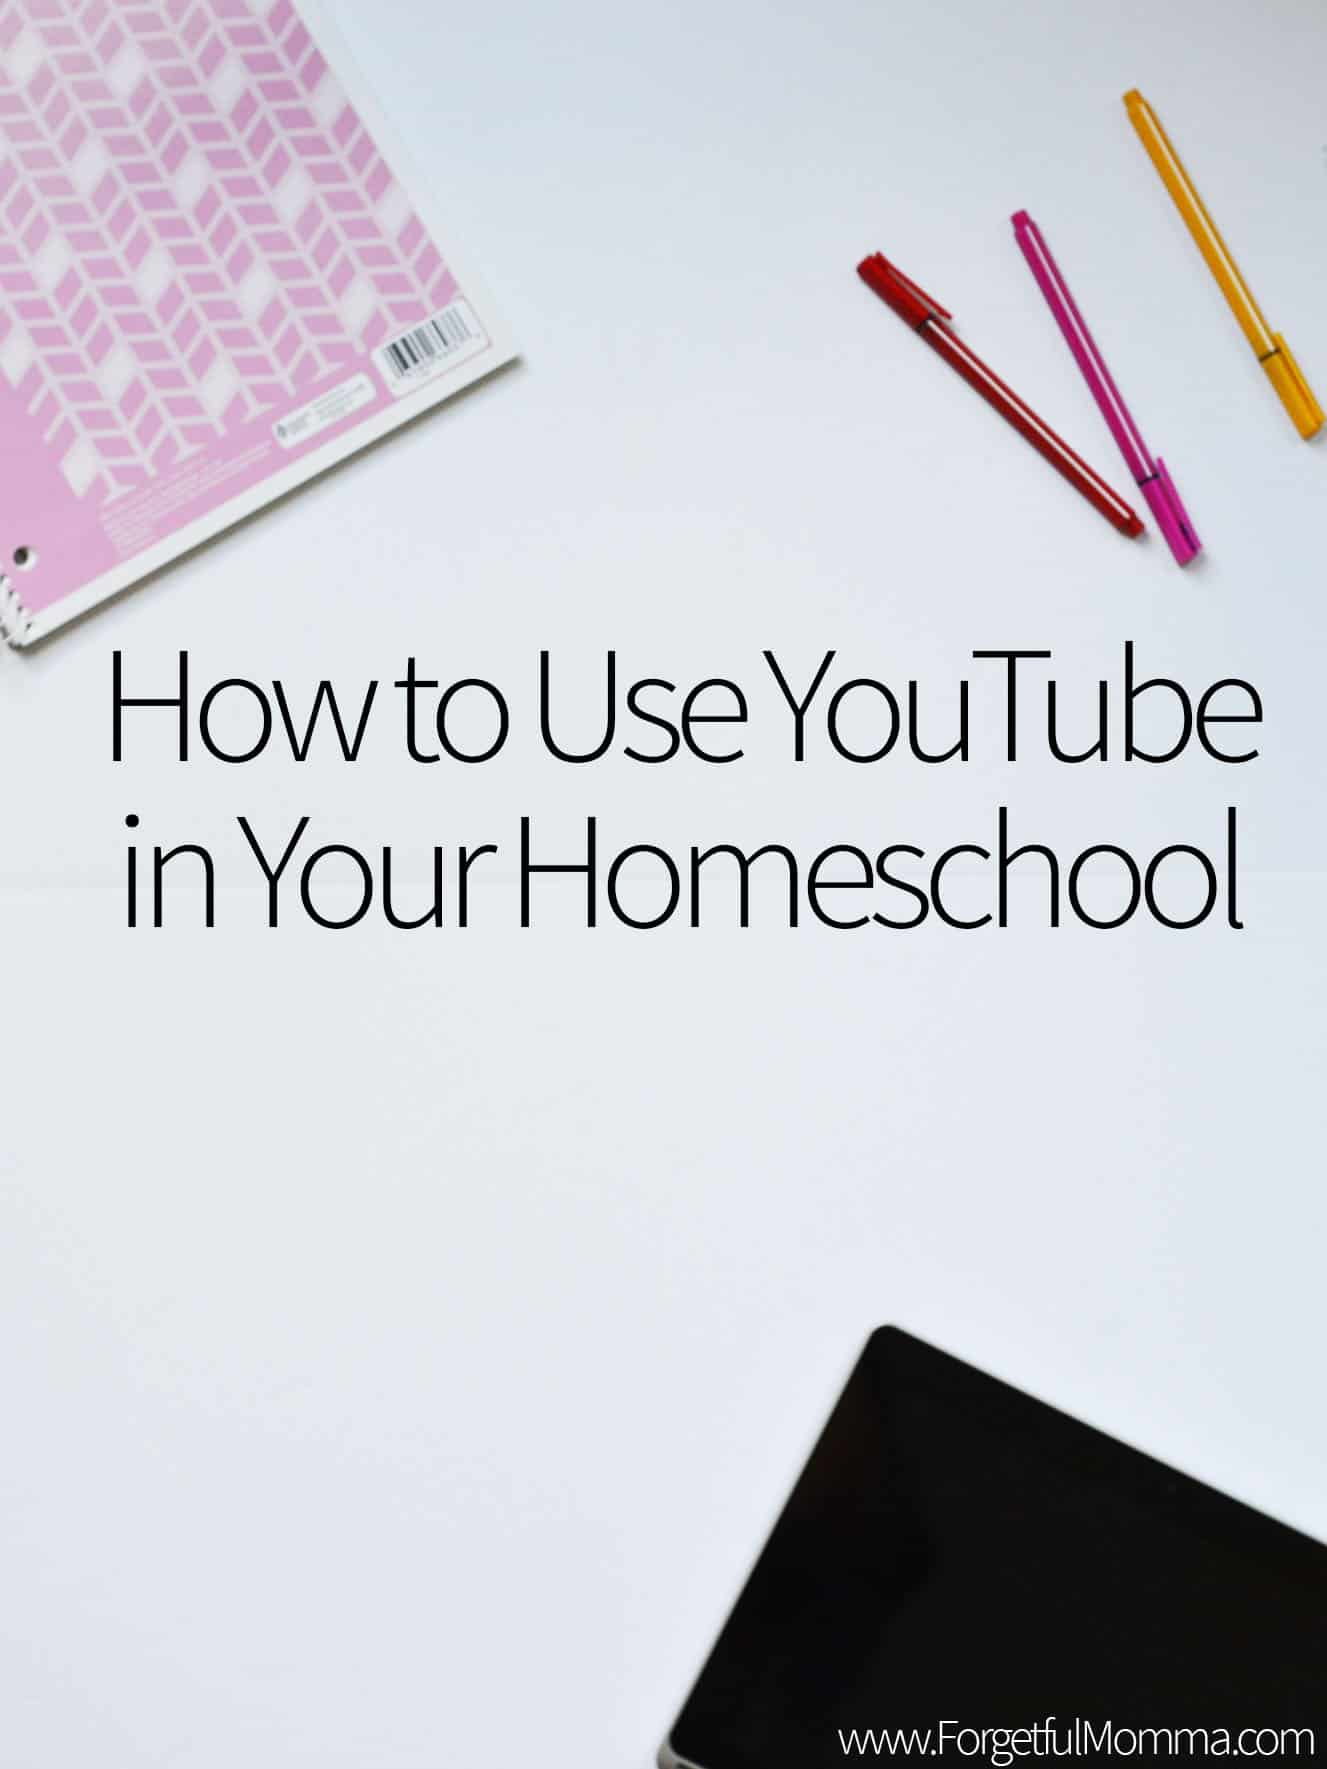 How to Use YouTube in Your Homeschool